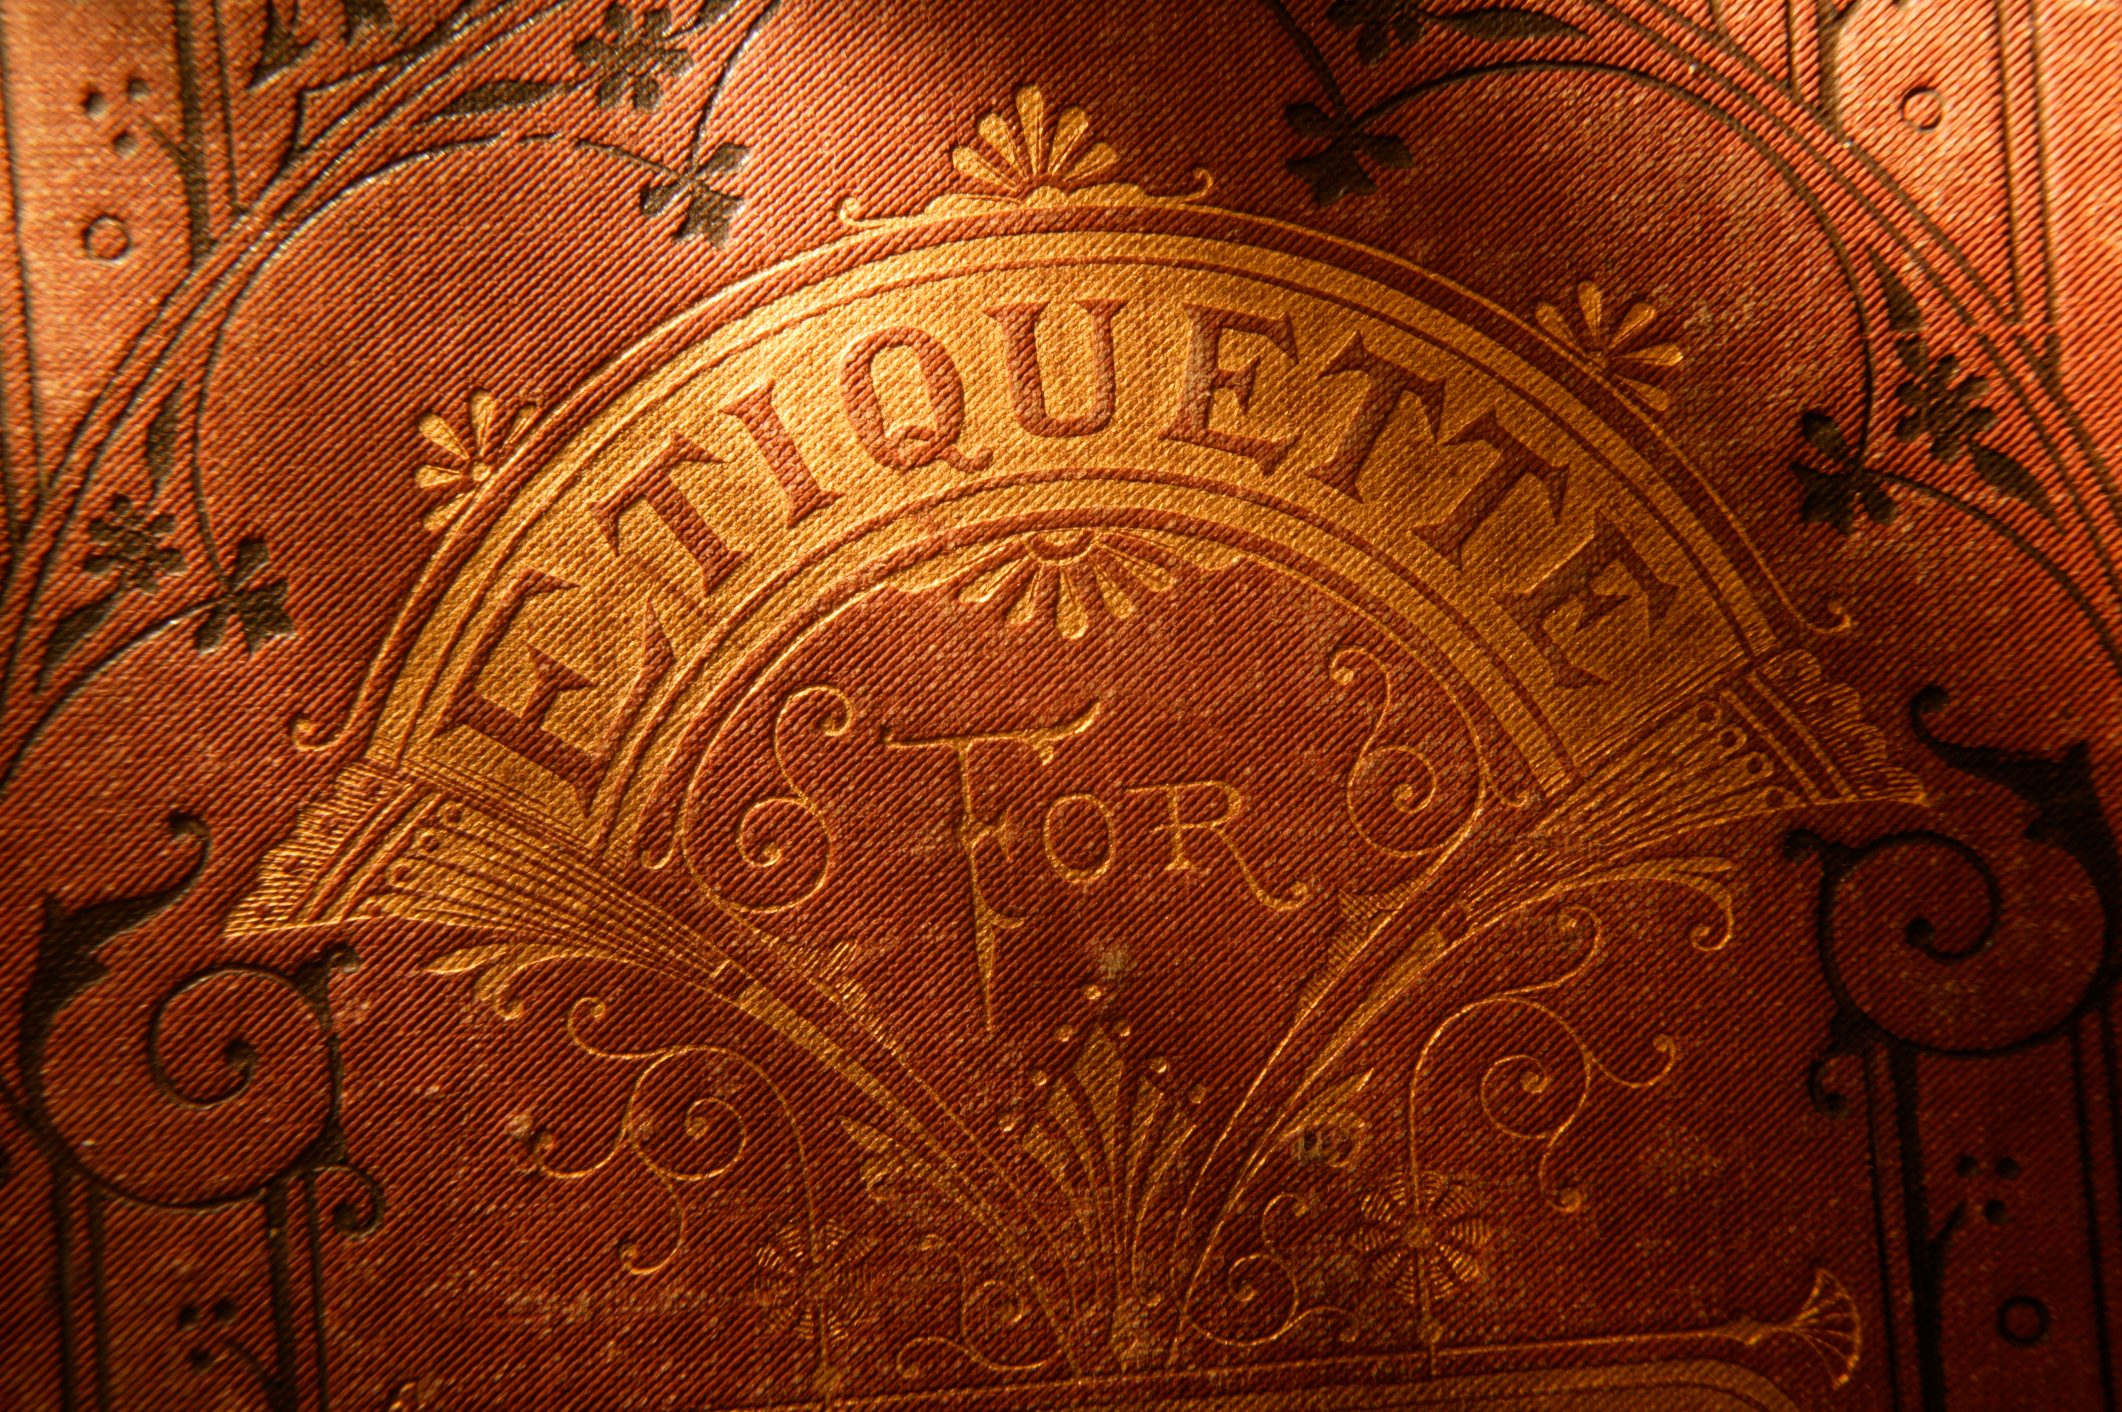 Antique Book of Etiquette 2